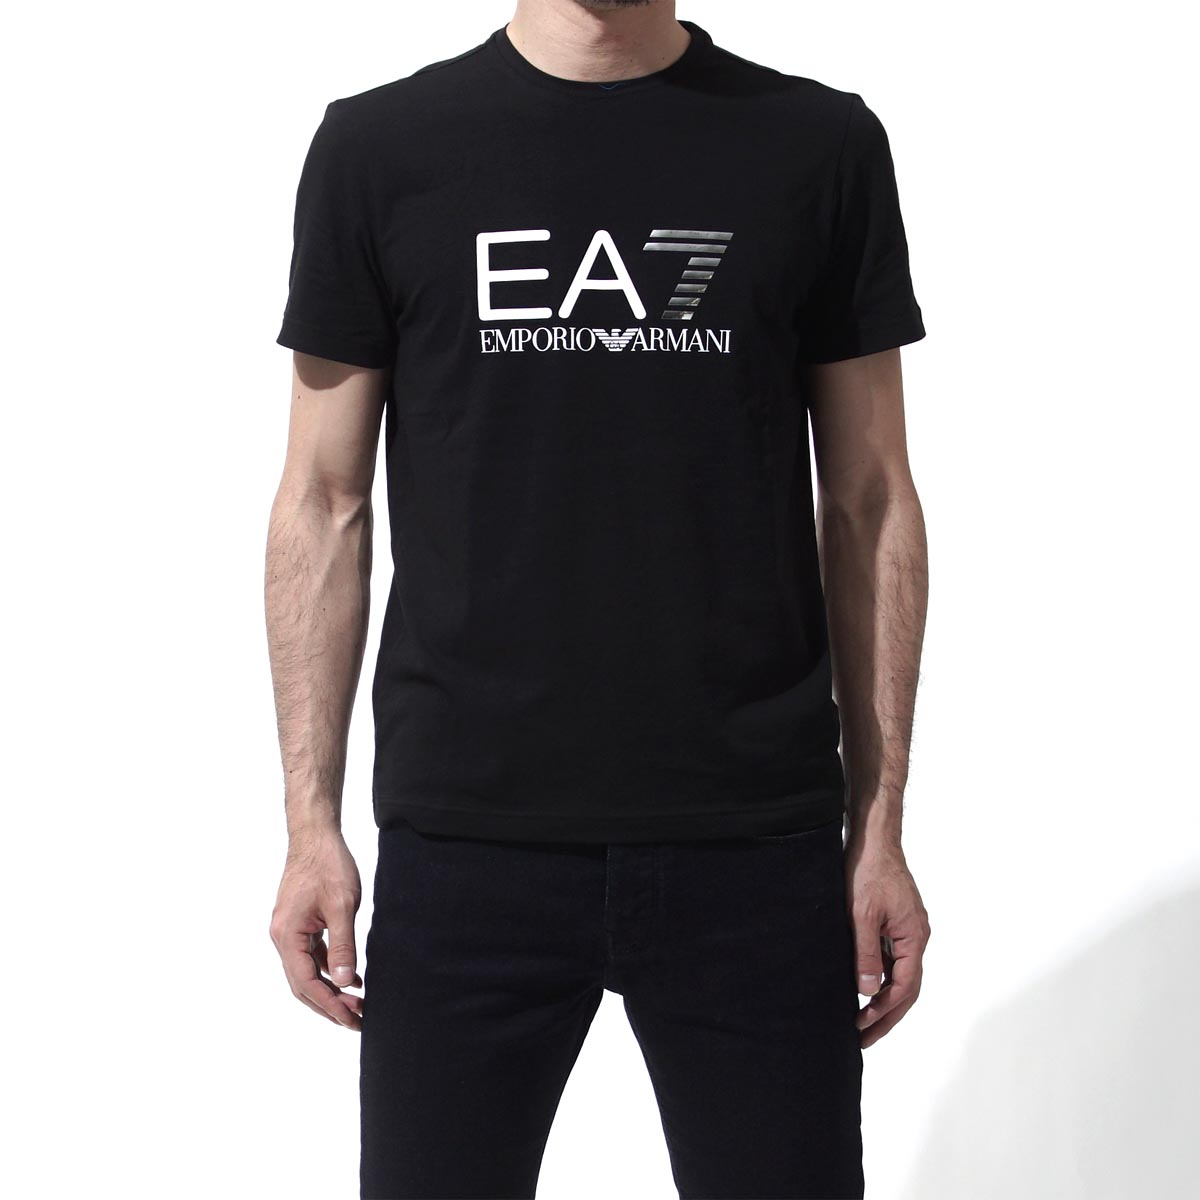 cheap ea7 t shirt